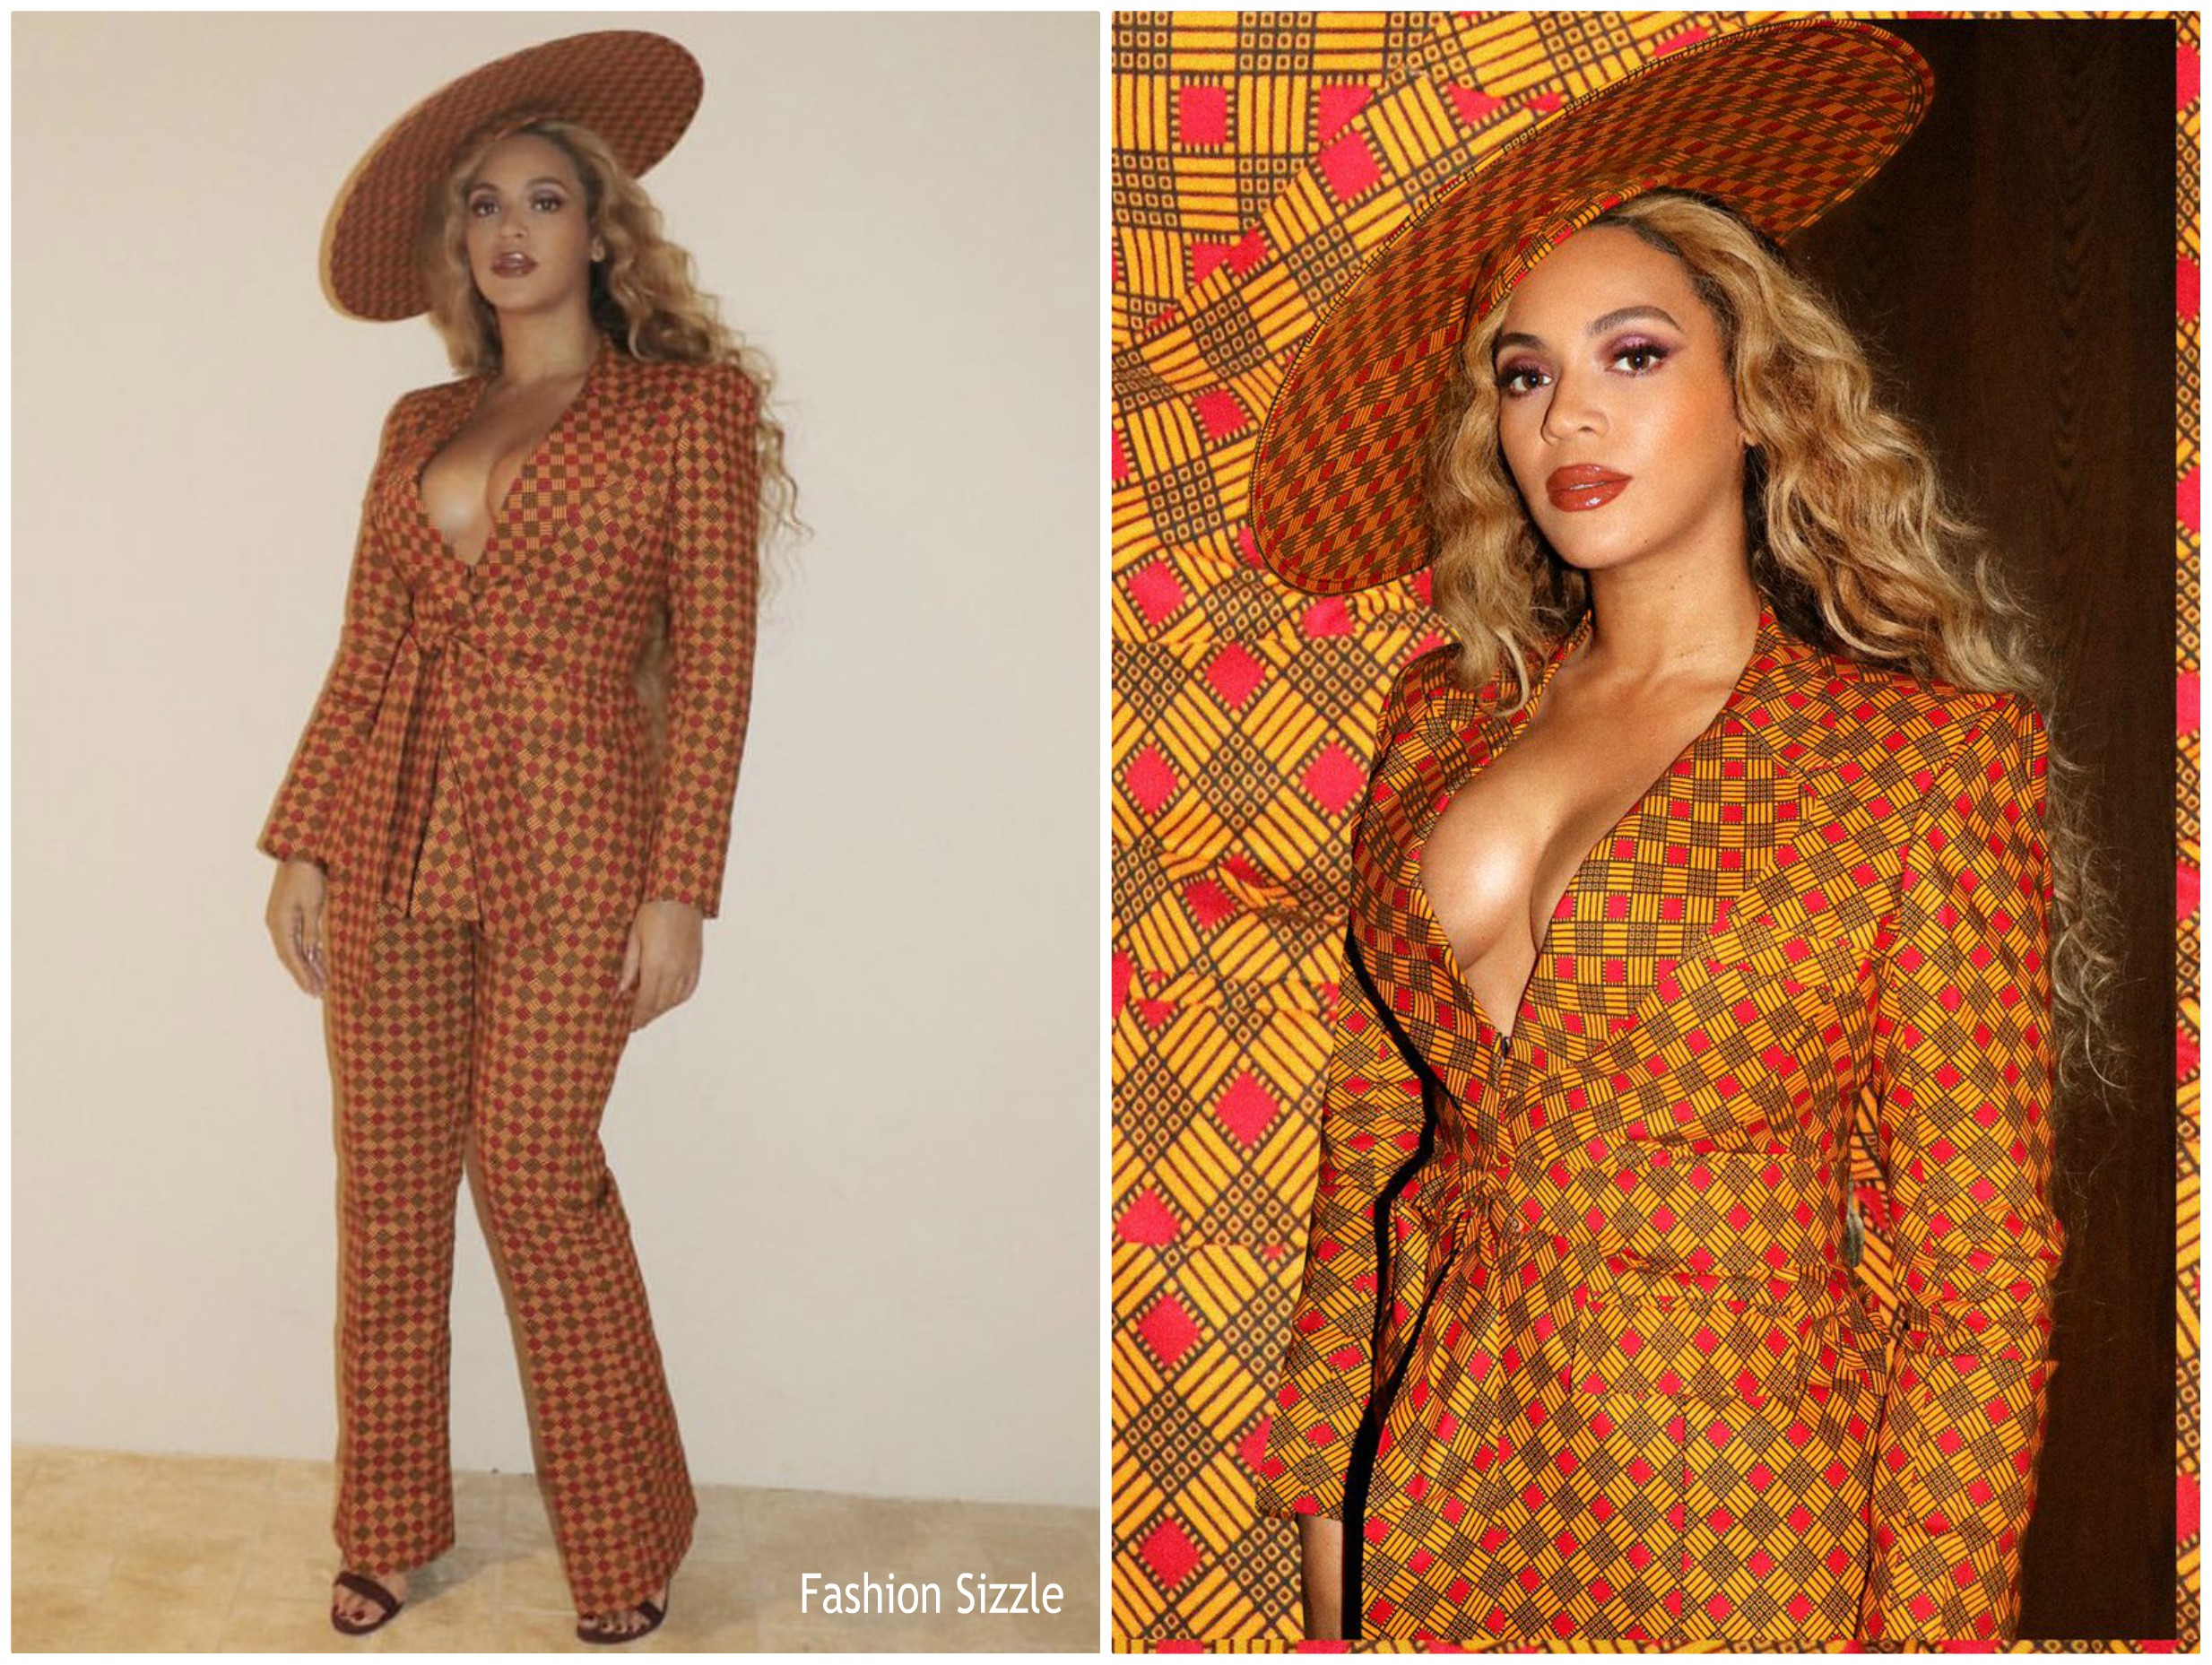 beyonce-knowles-in-enagancio-dreamweavers-exhibition-opening-celebration